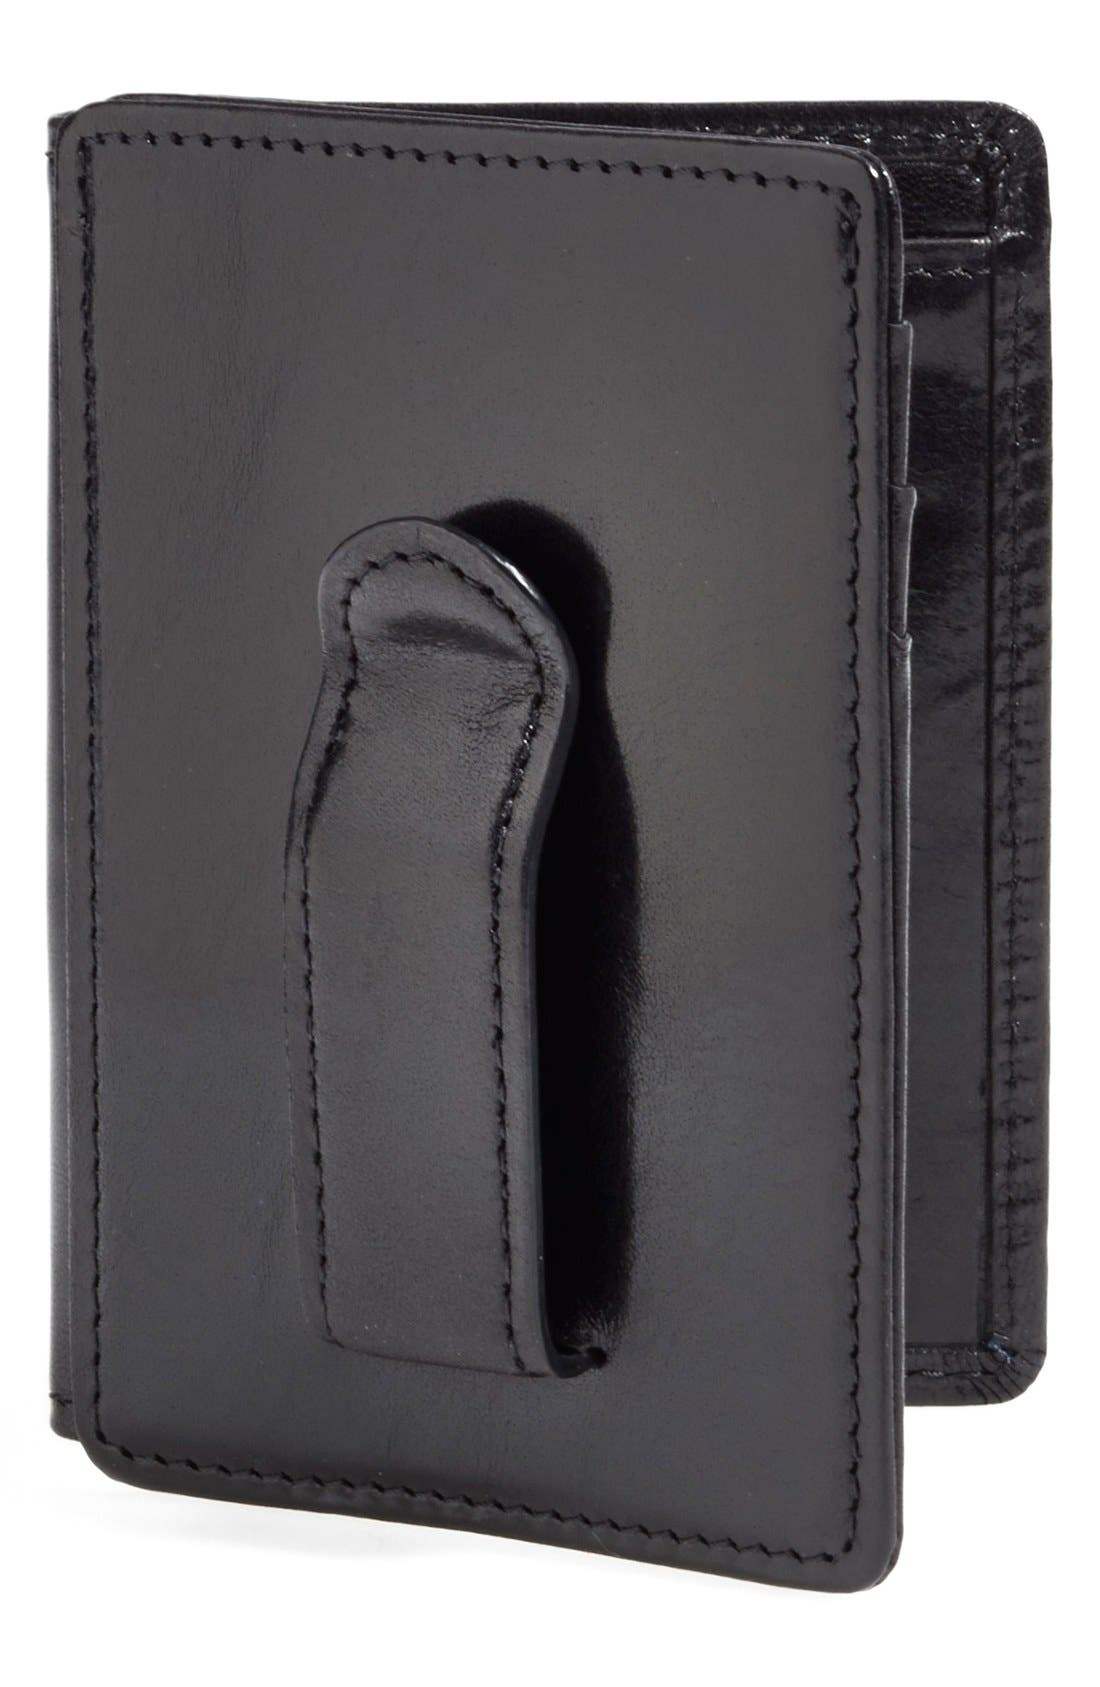 Bosca 'Old Leather' Front Pocket ID Wallet